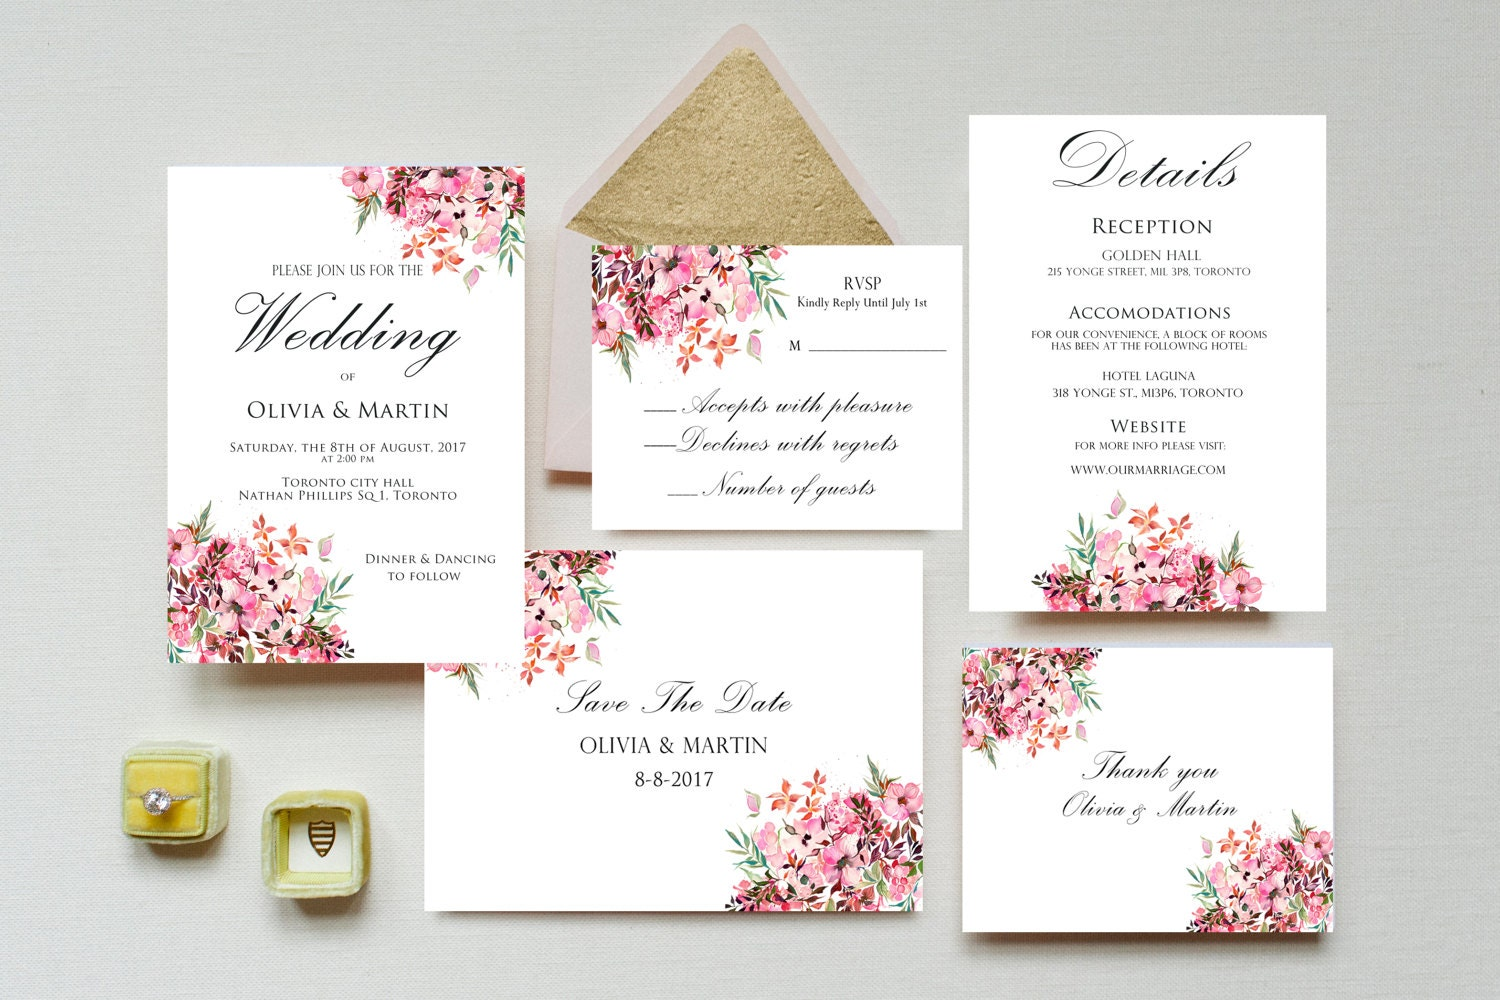 Printable Wedding Invitation Sets: Wedding Invitation Printable Wedding Invitation Set Floral